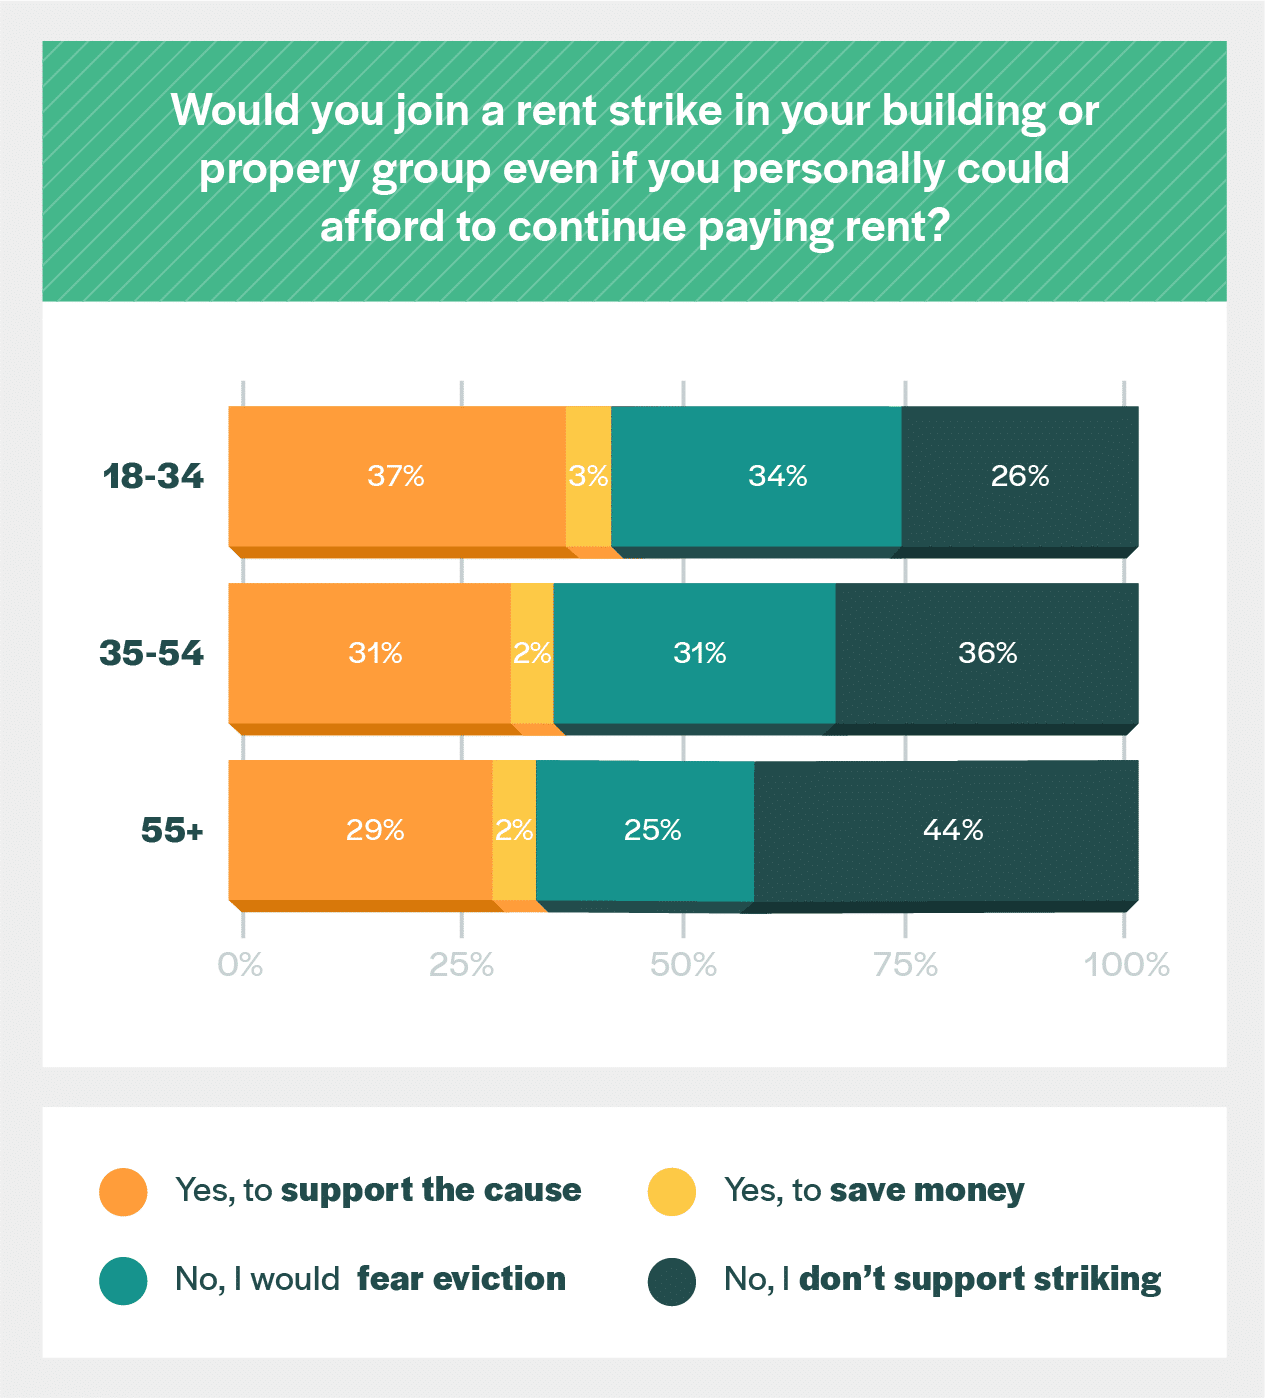 rent strike participation age breakdown